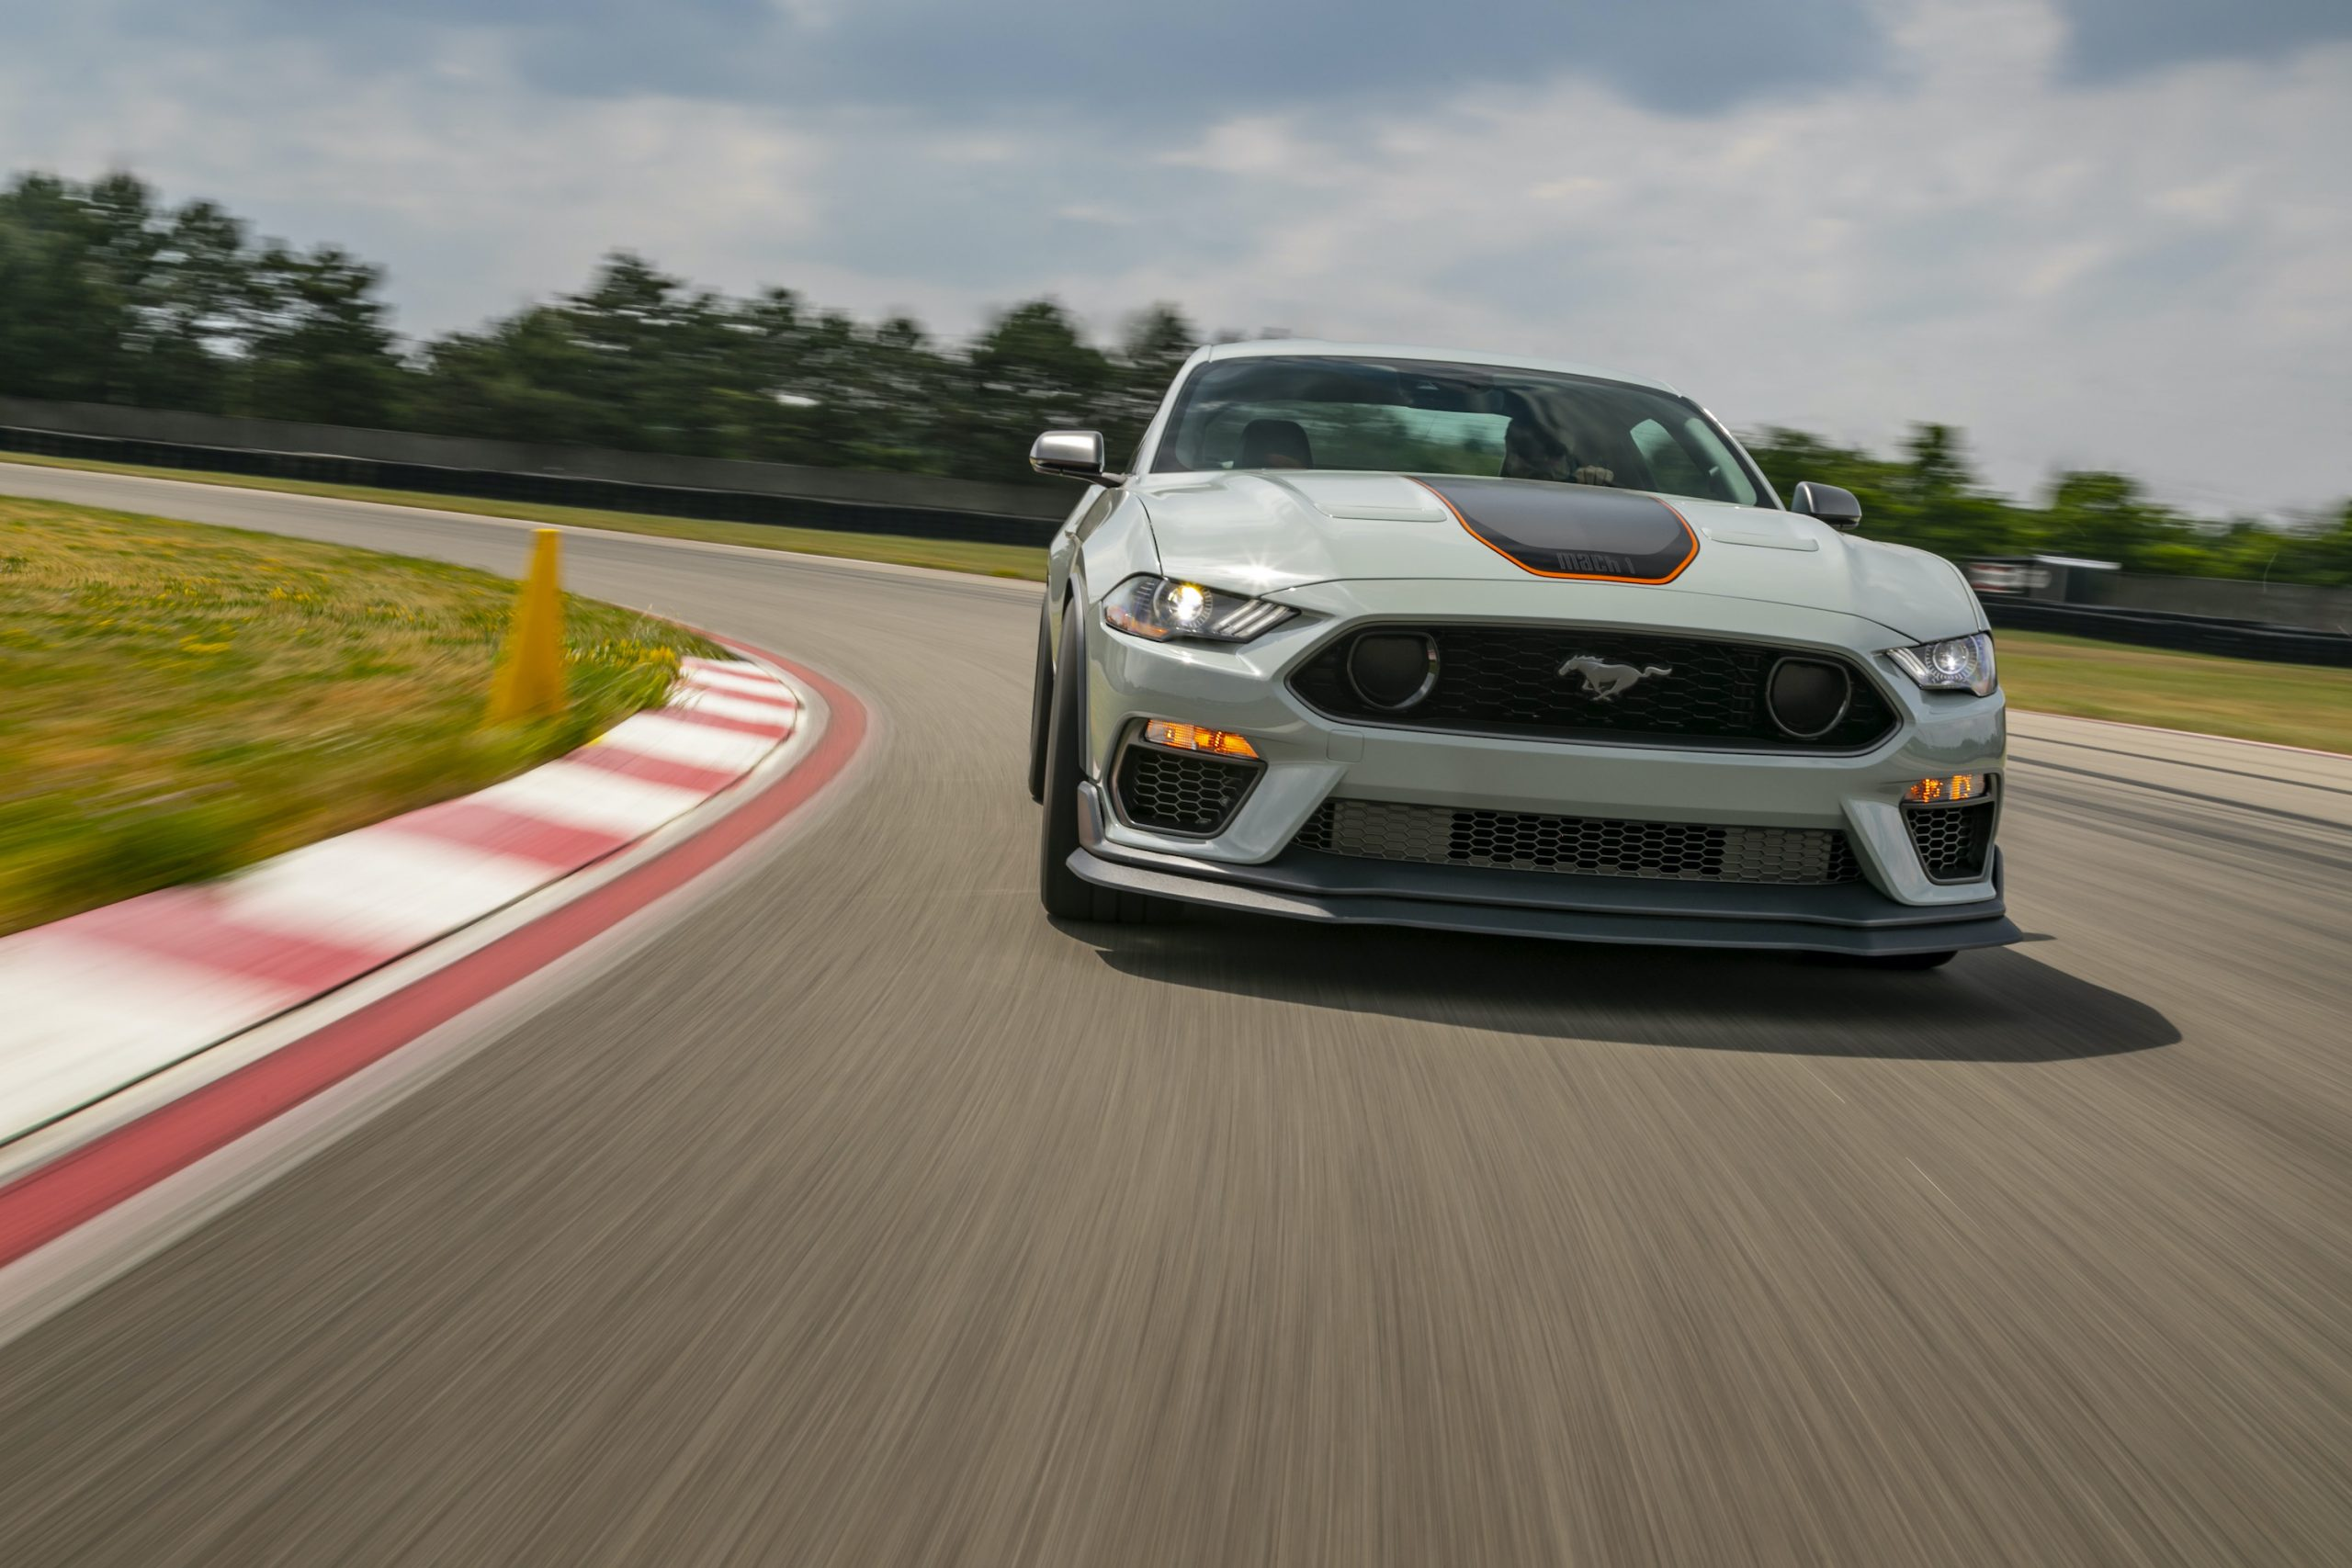 2021 Ford Mustang Mach 1 front action